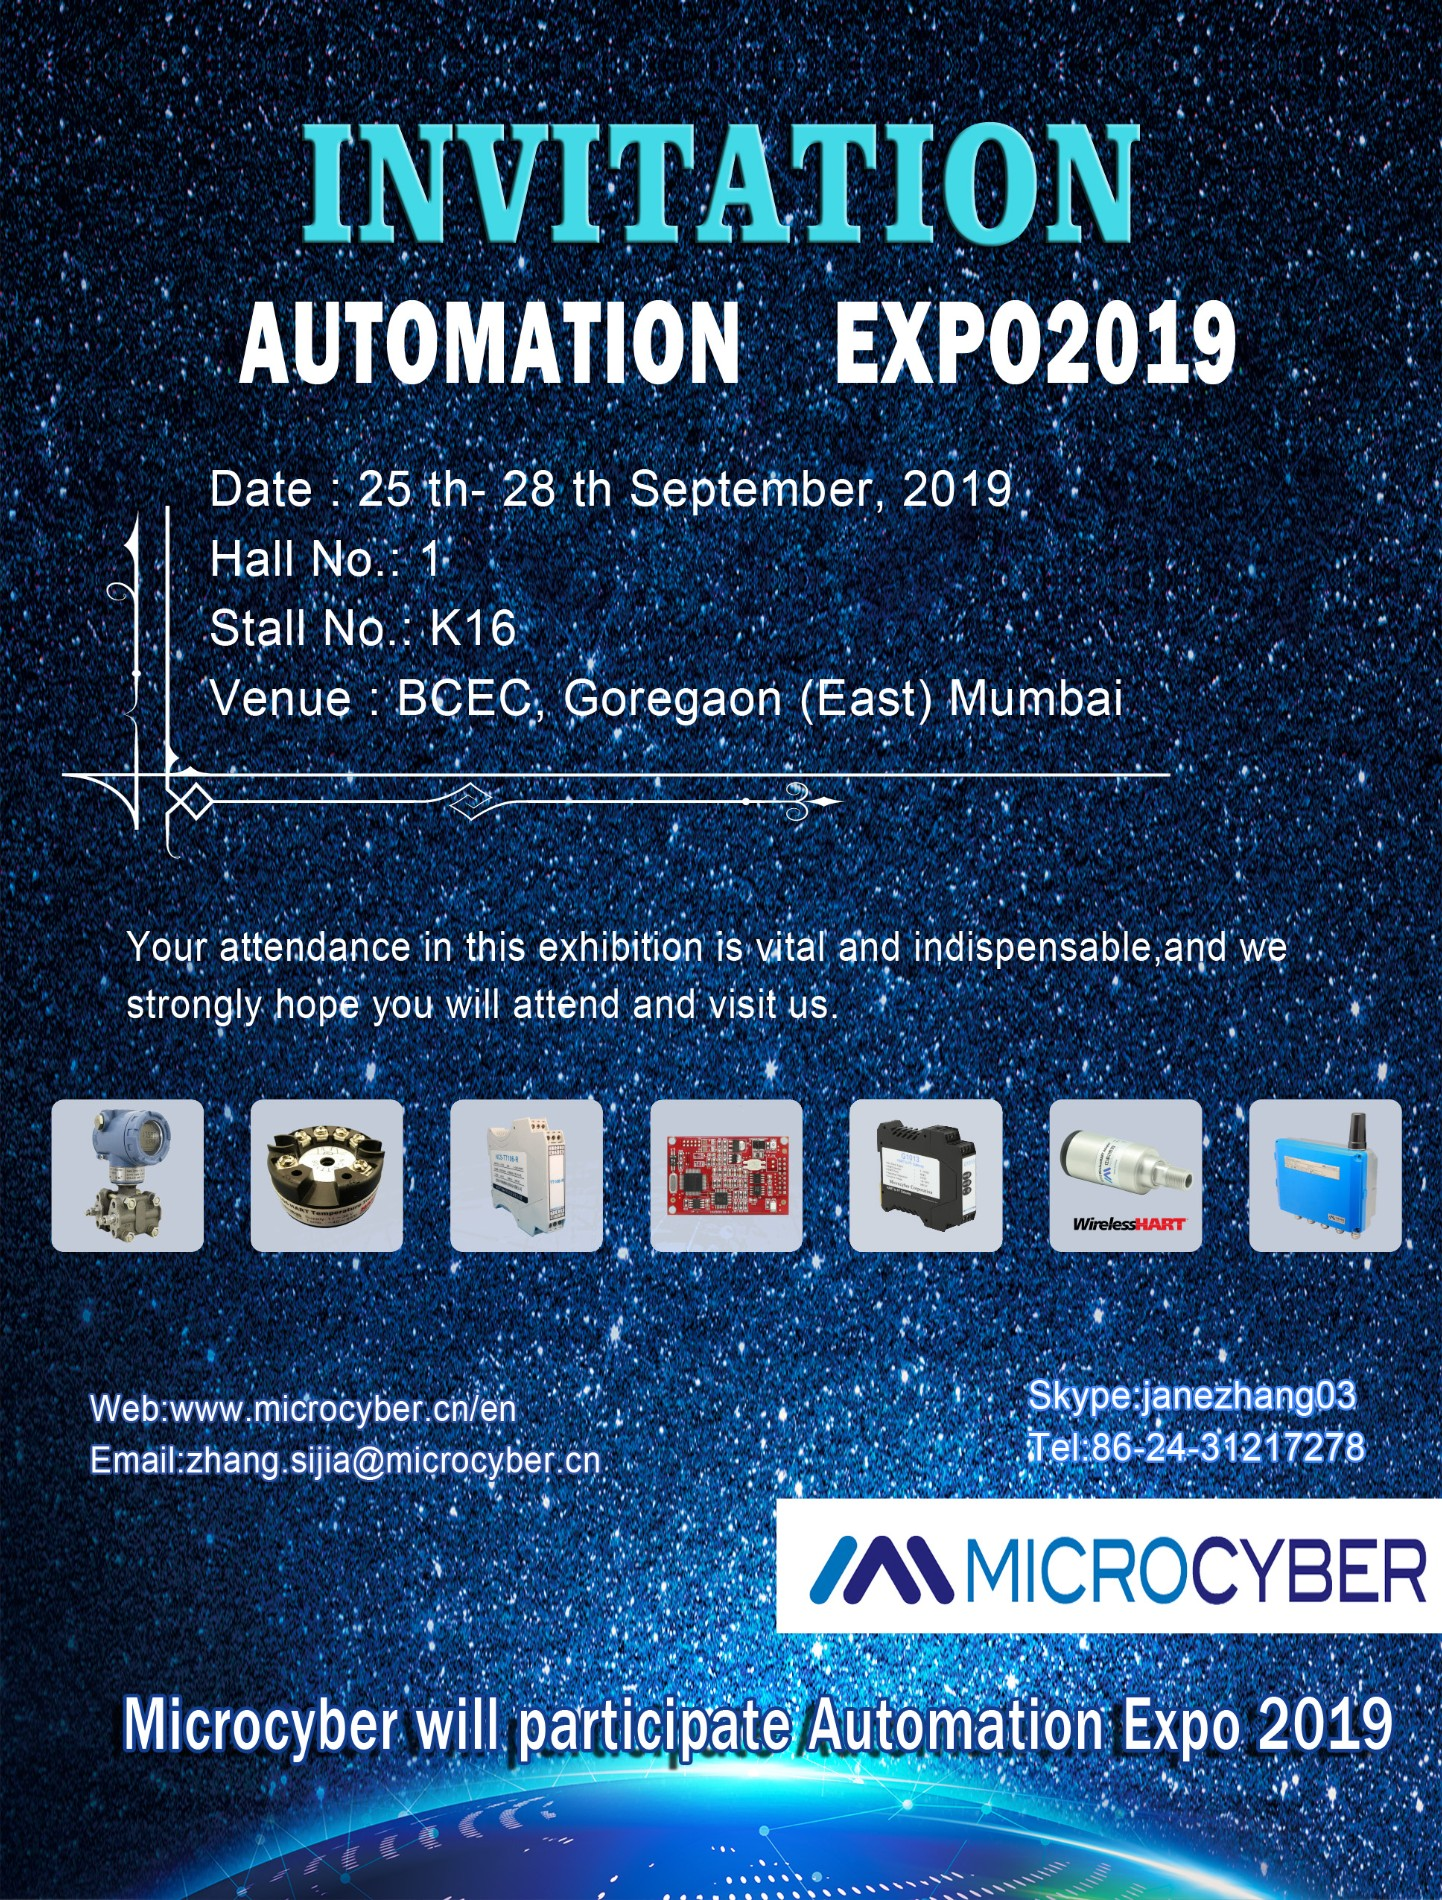 Microcyber Corporation will participate Automation Expo 2019!